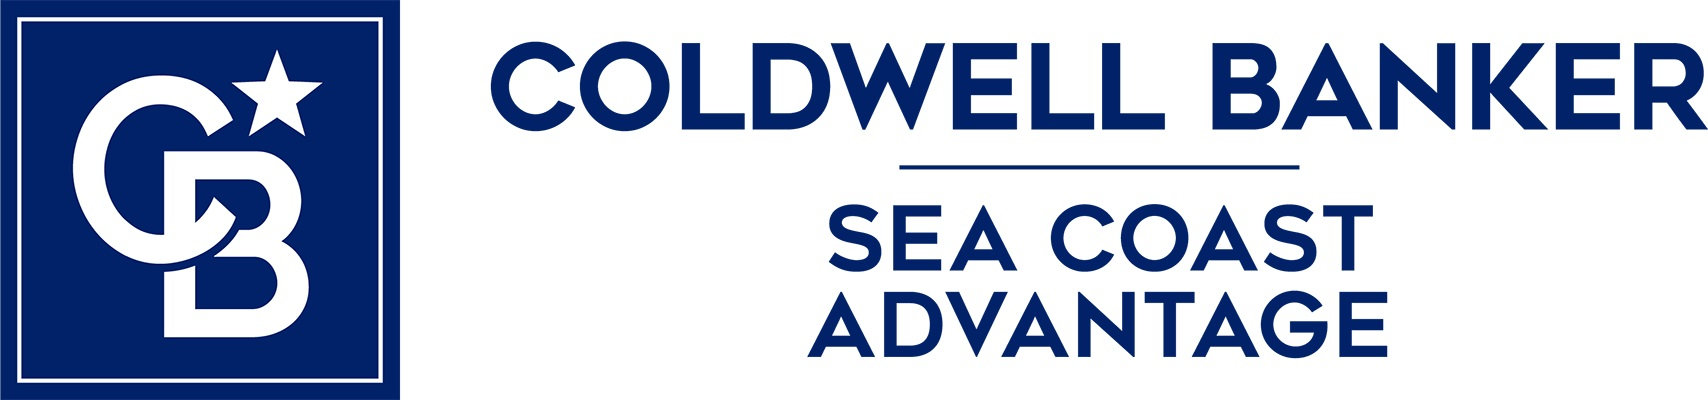 Rpbert Newman - Coldwell Banker Sea Coast Advantage Realty